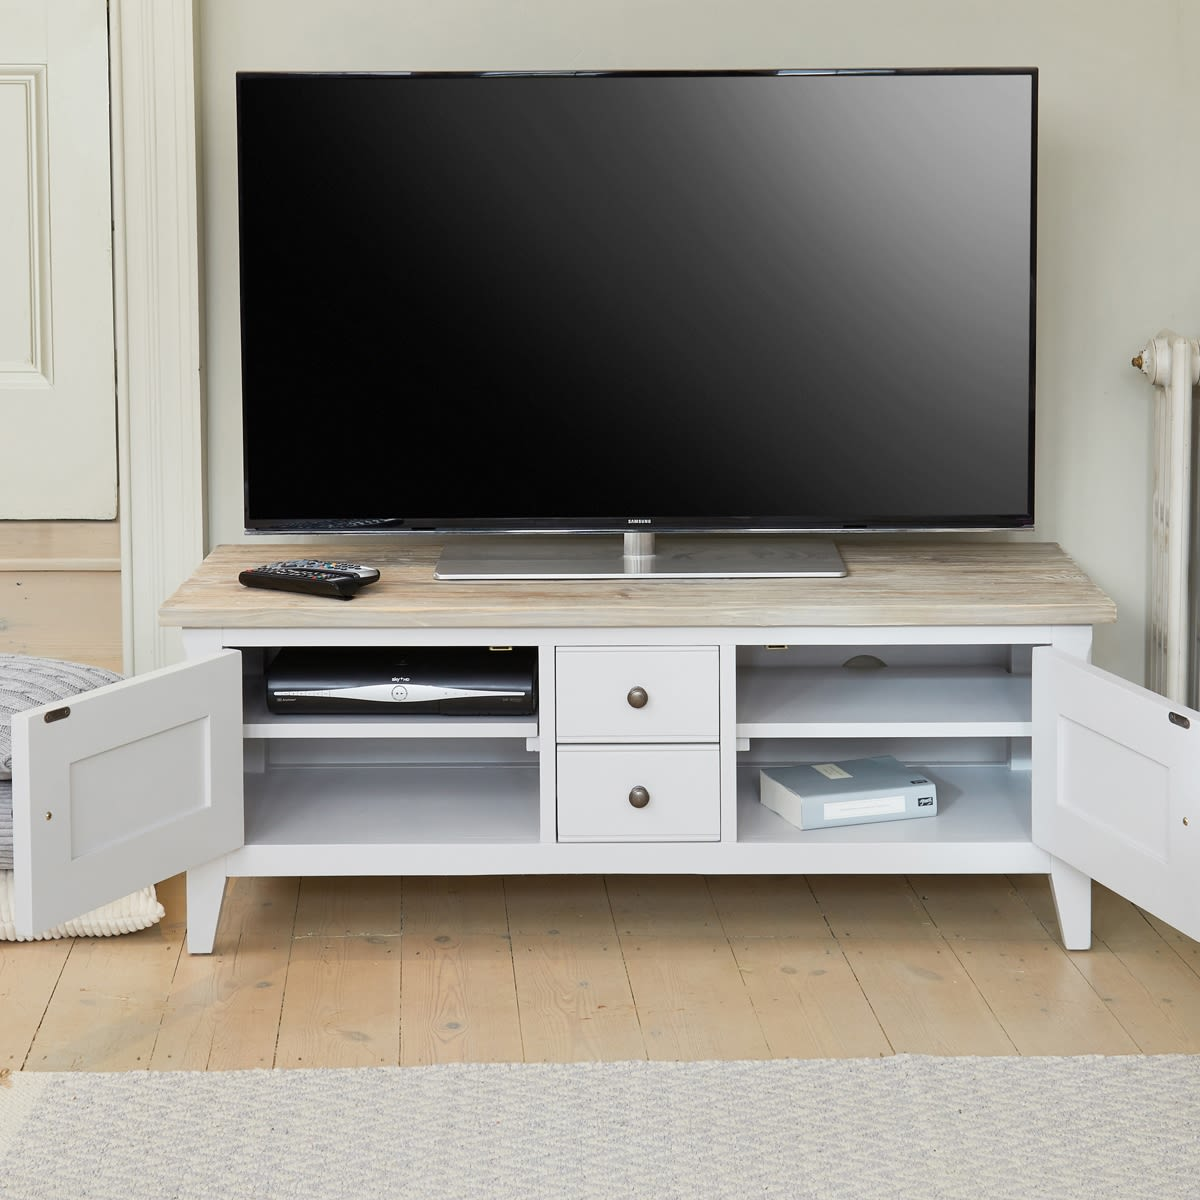 Signature Grey Widescreen Television Stand Was £450.00 Now